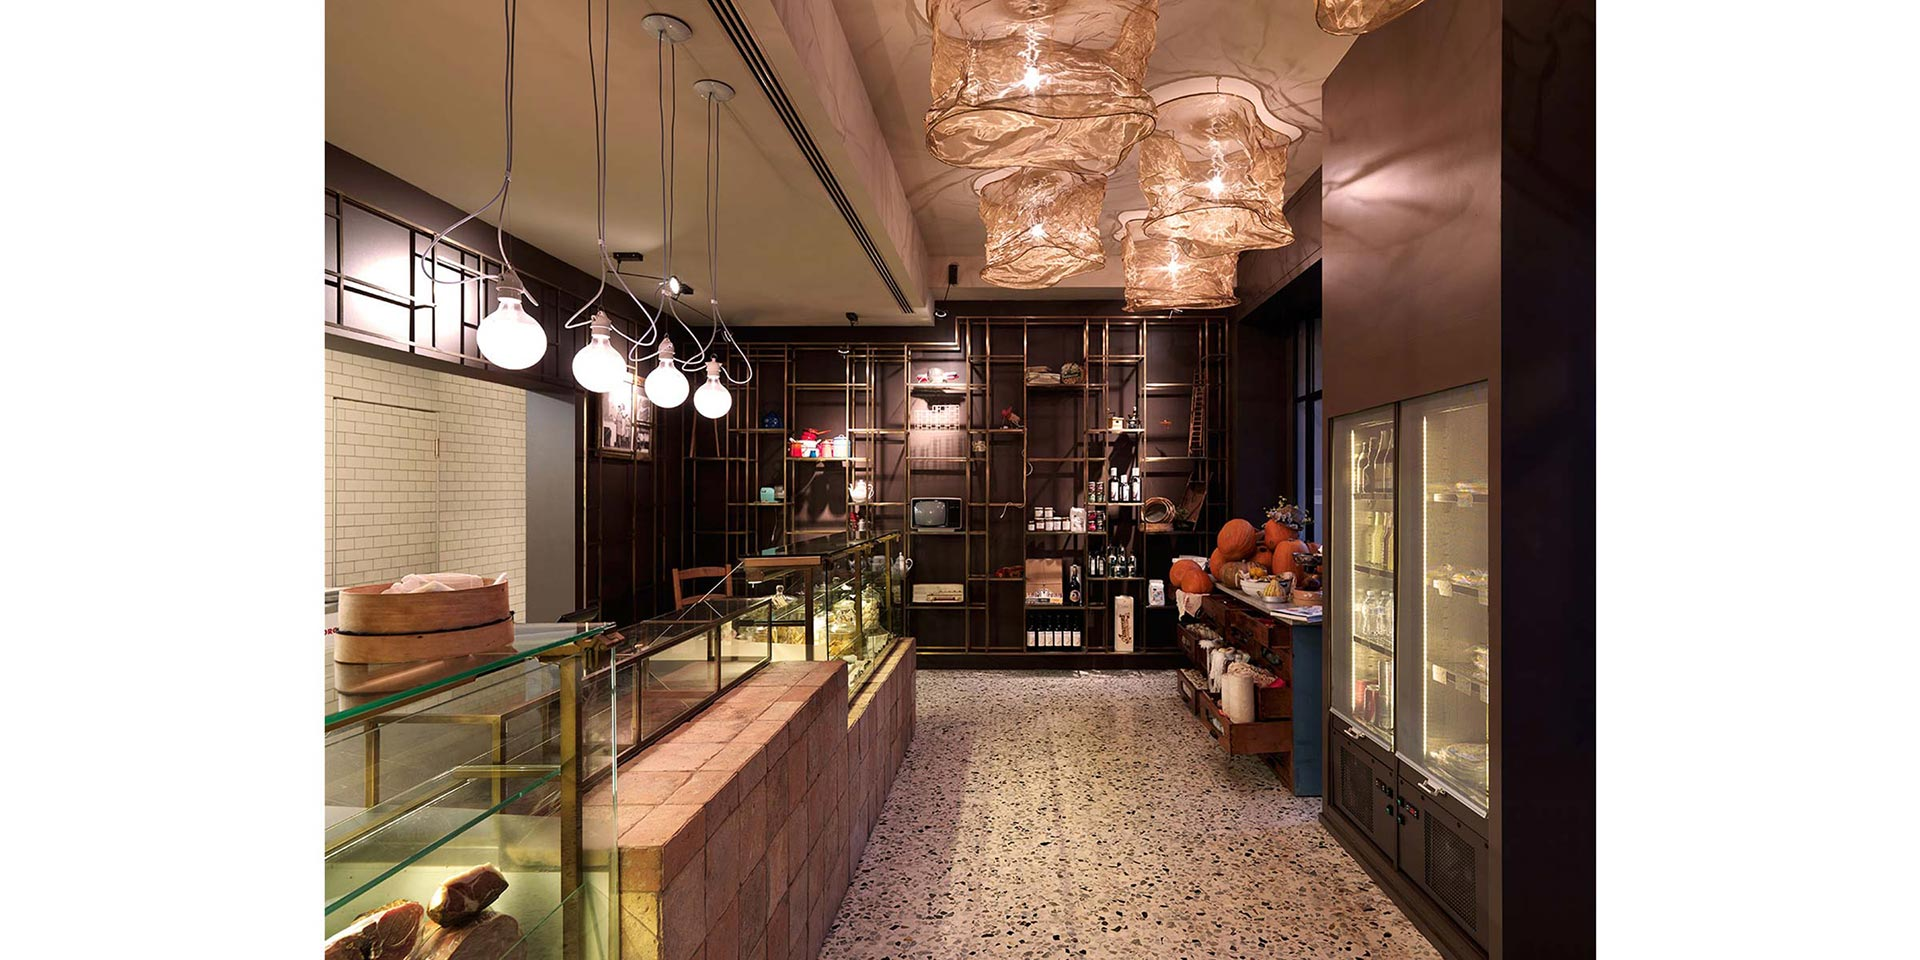 archinow_LEL_street-food-store_04